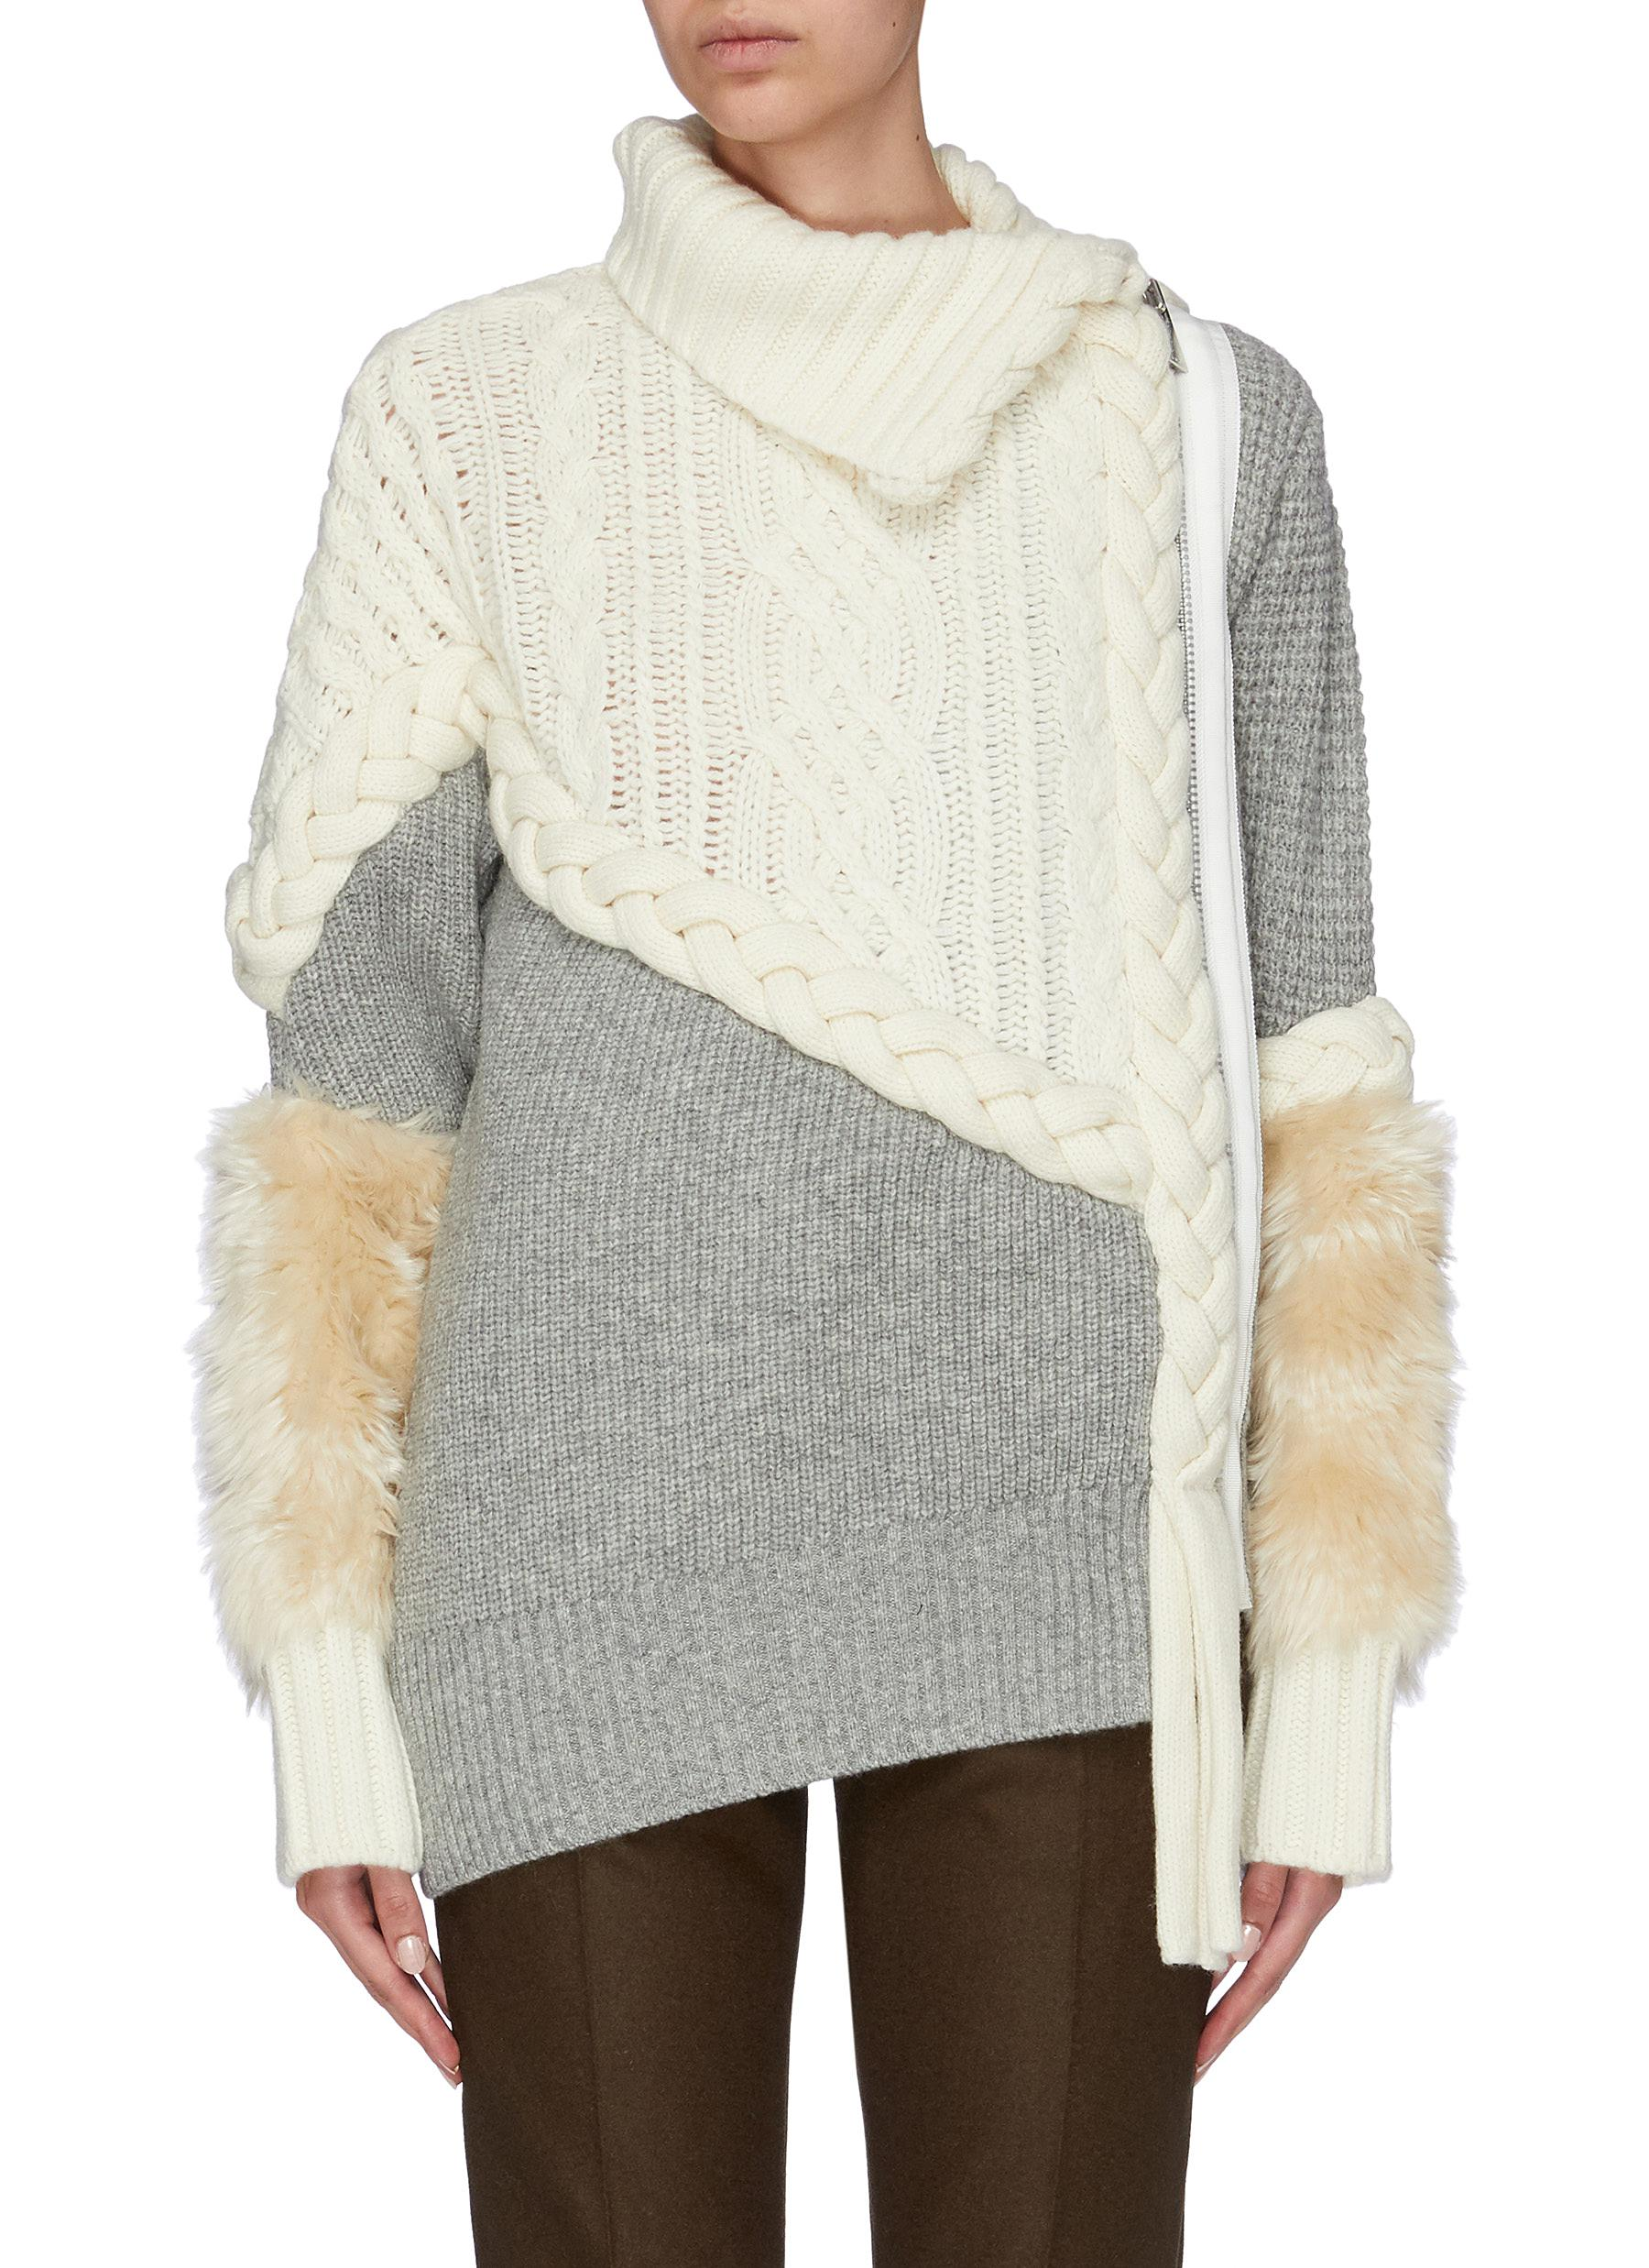 Faux fur panel mix knit patchwork turtleneck sweater by Sacai